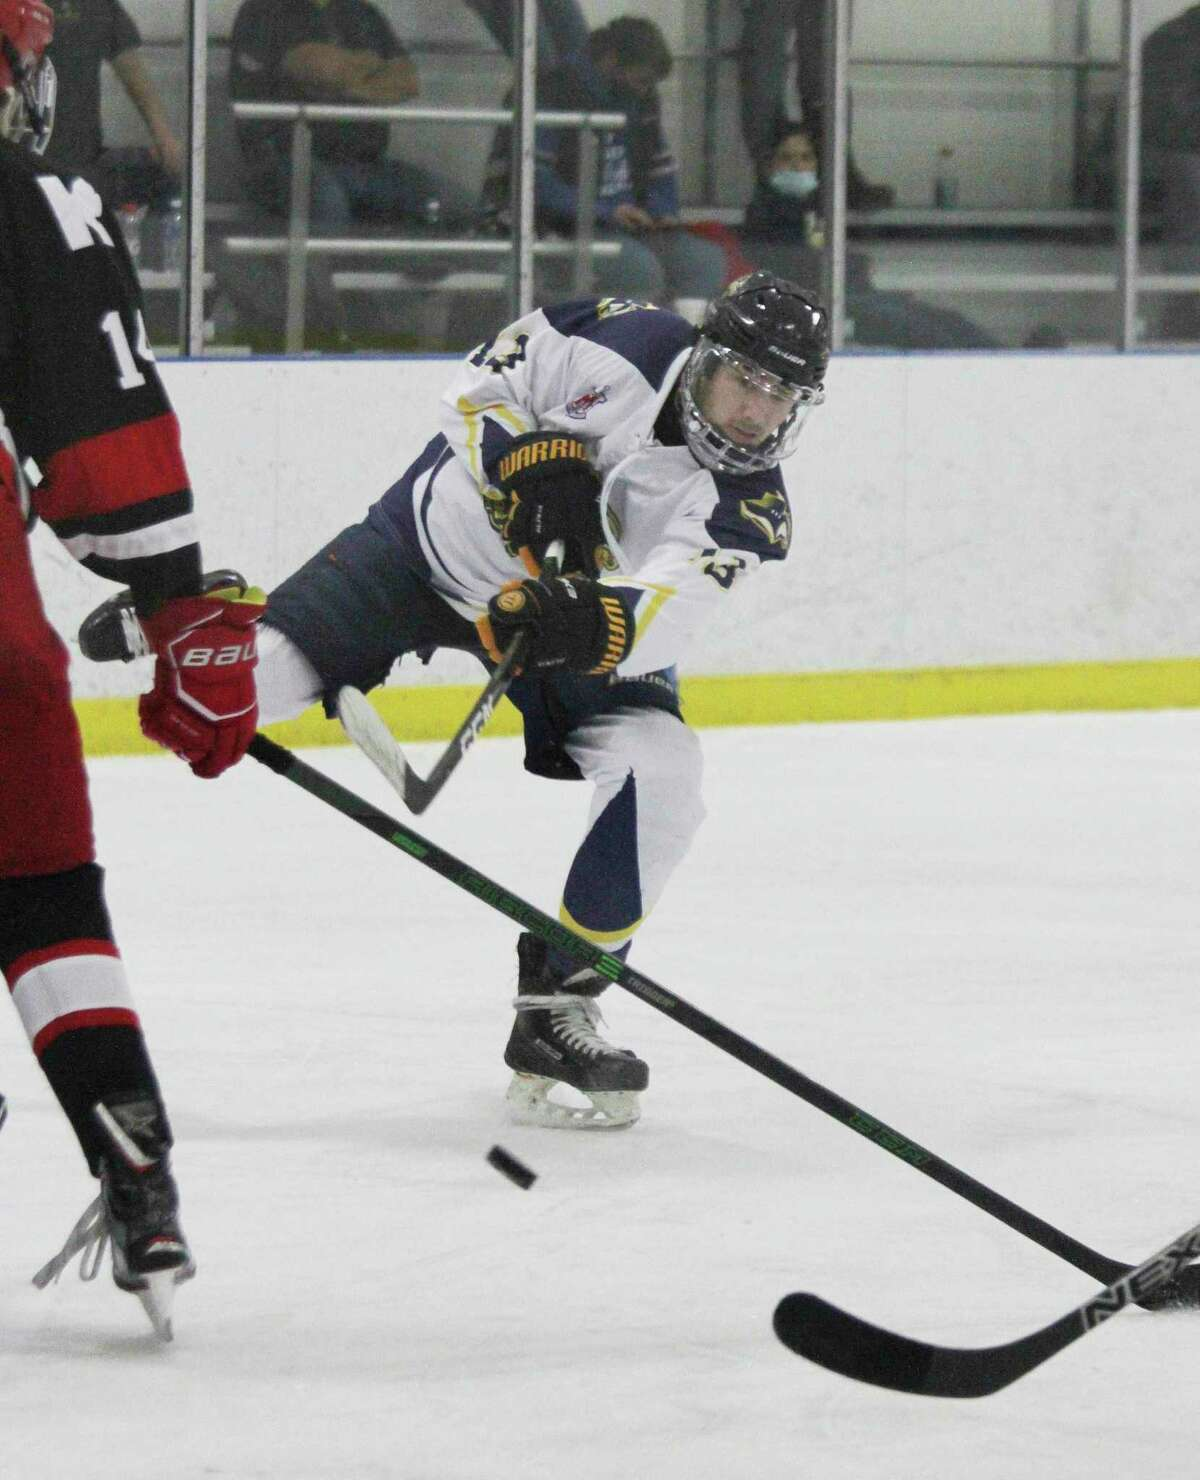 The Lakeshore Badgers' Mateo Barnett, of Manistee Catholic, fires a shot Wednesday at West Shore Community Ice Arena. (Dylan Savela/News Advocate)